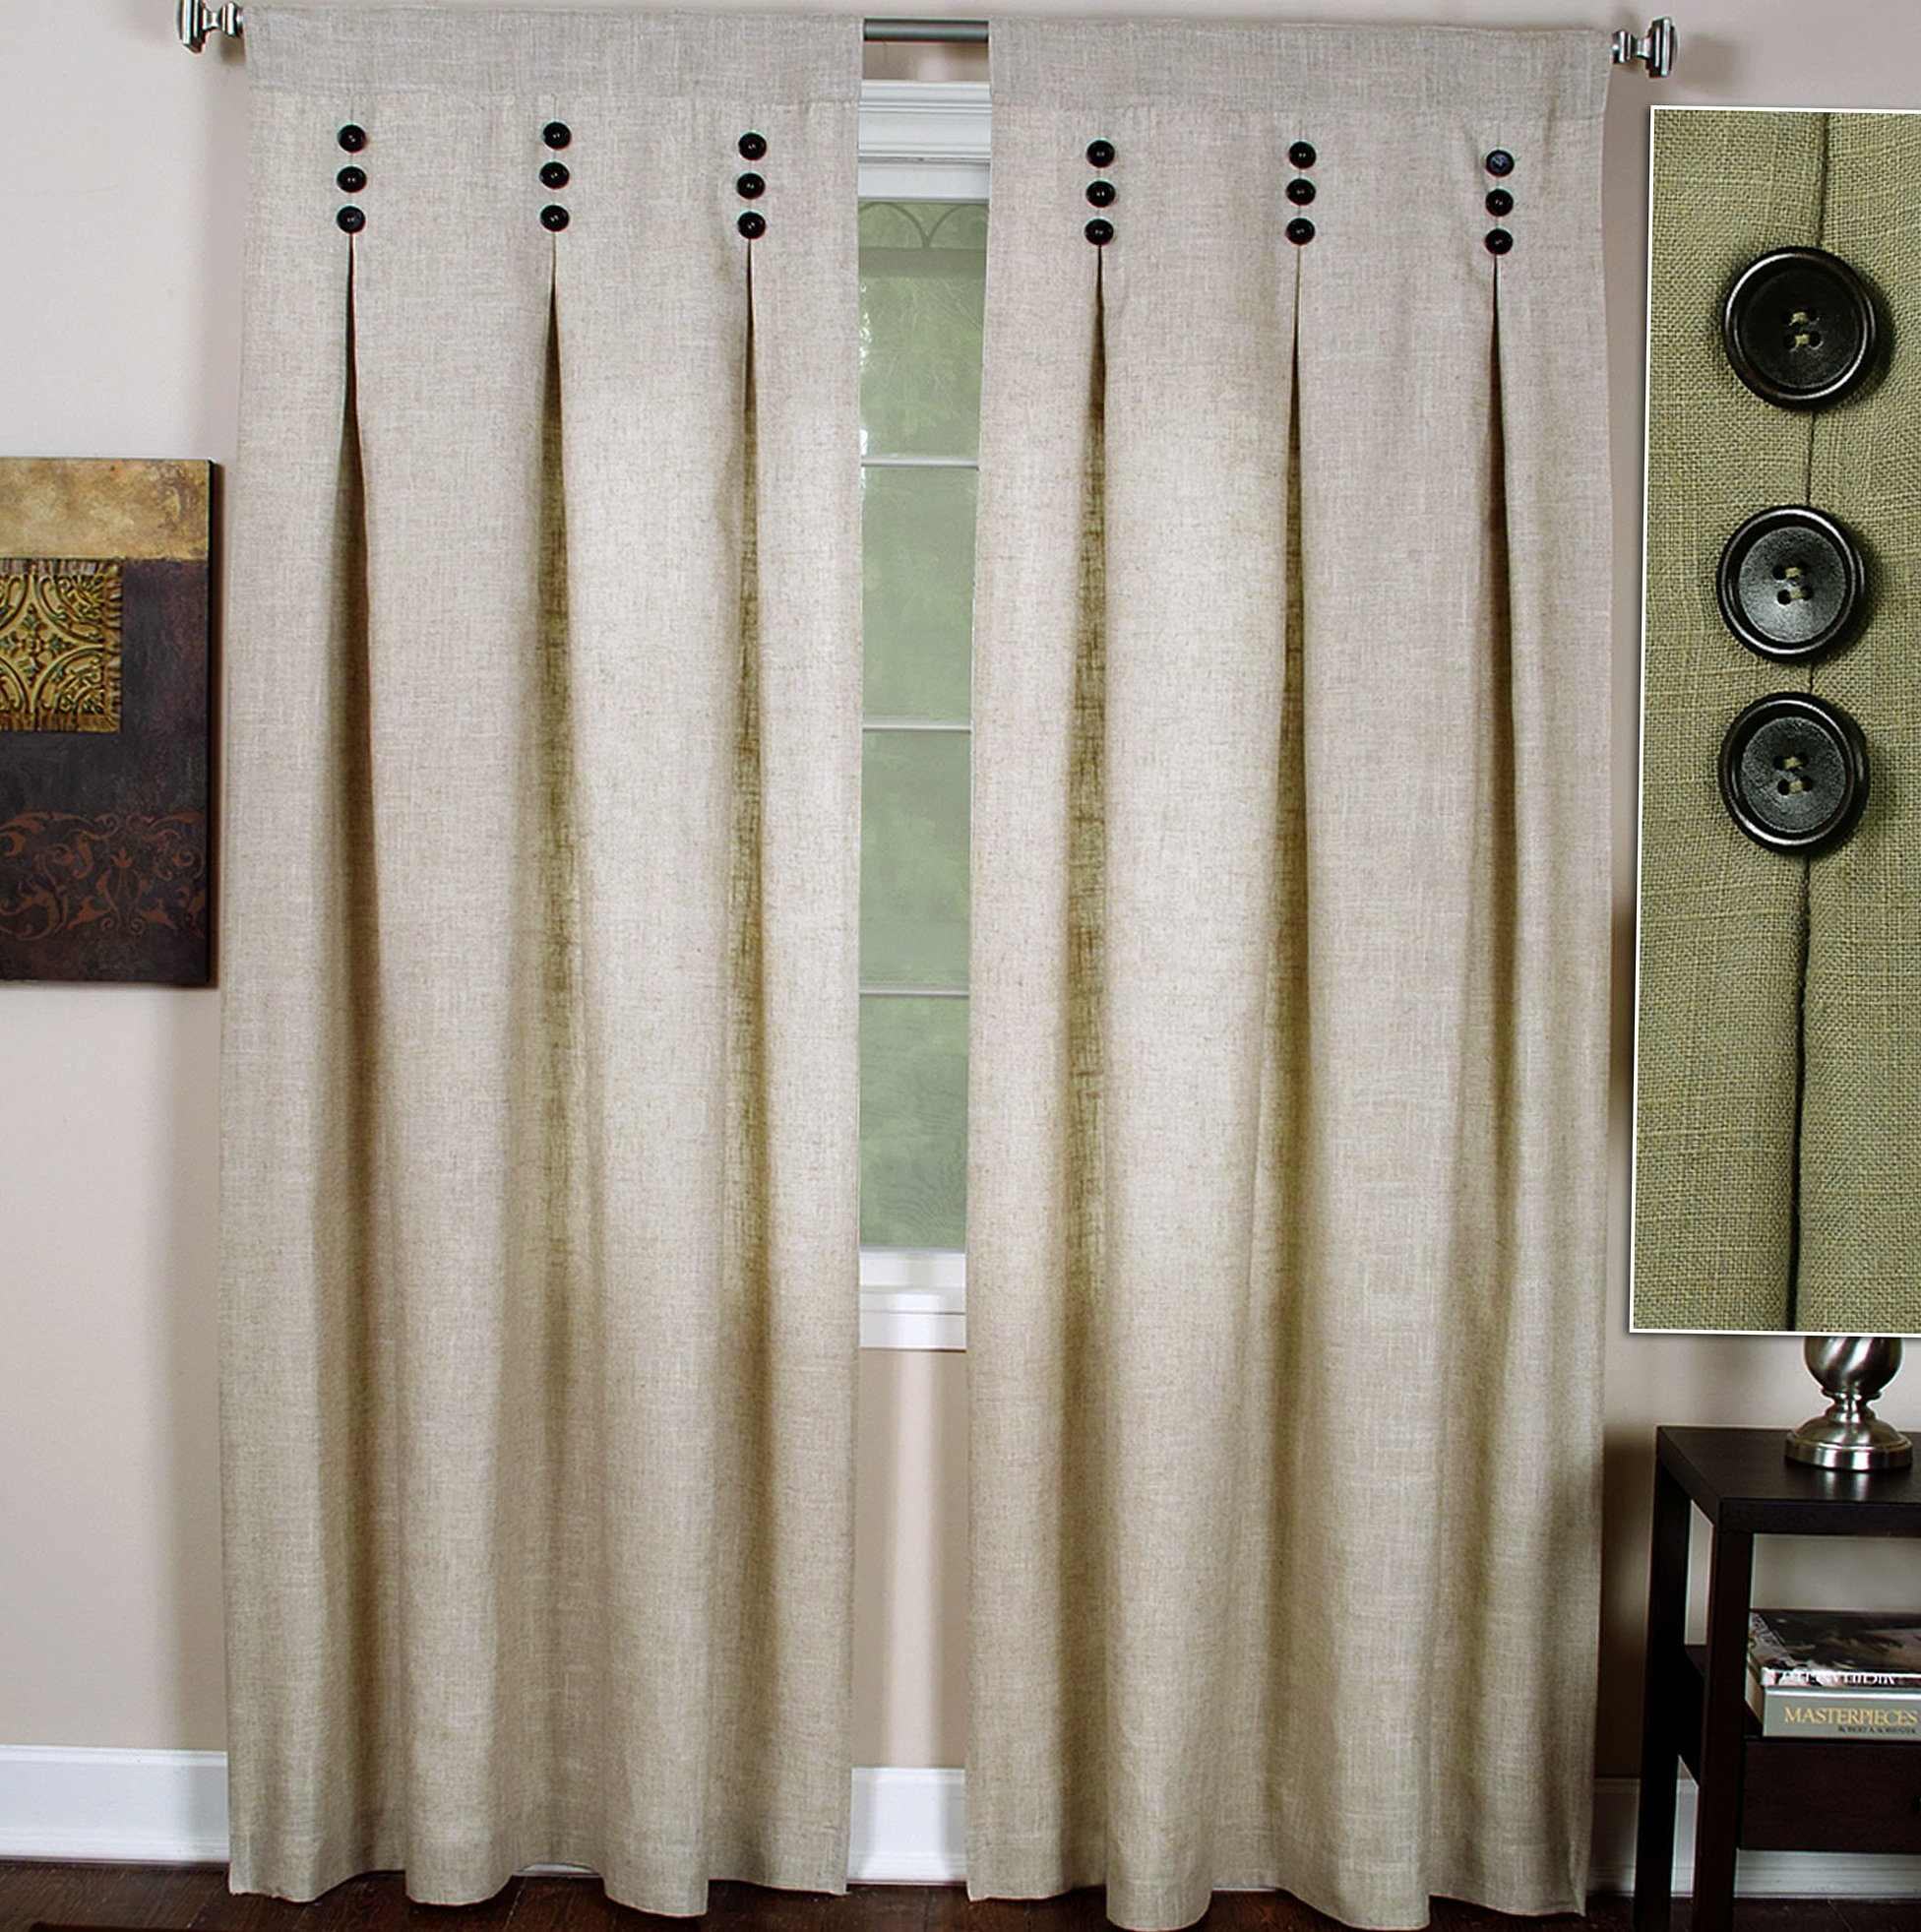 Pinch Pleat Curtains With Buttons Home Design Ideas